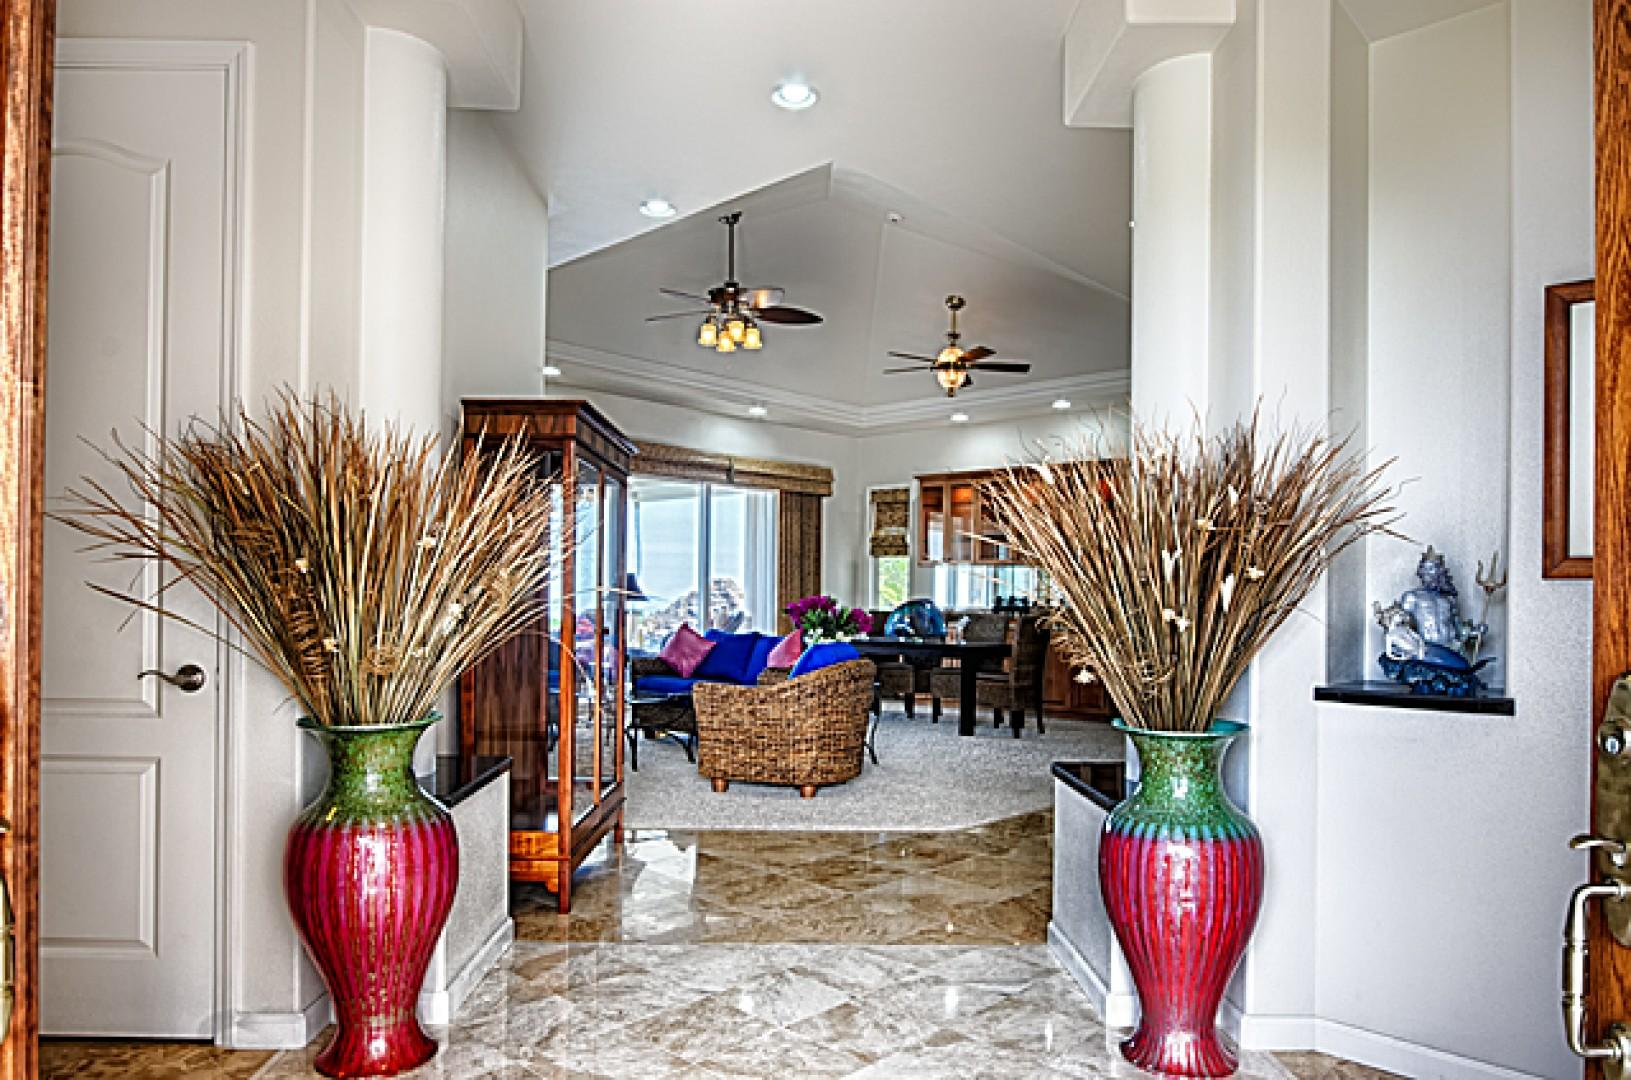 The grand entry way from the front door to the living room.